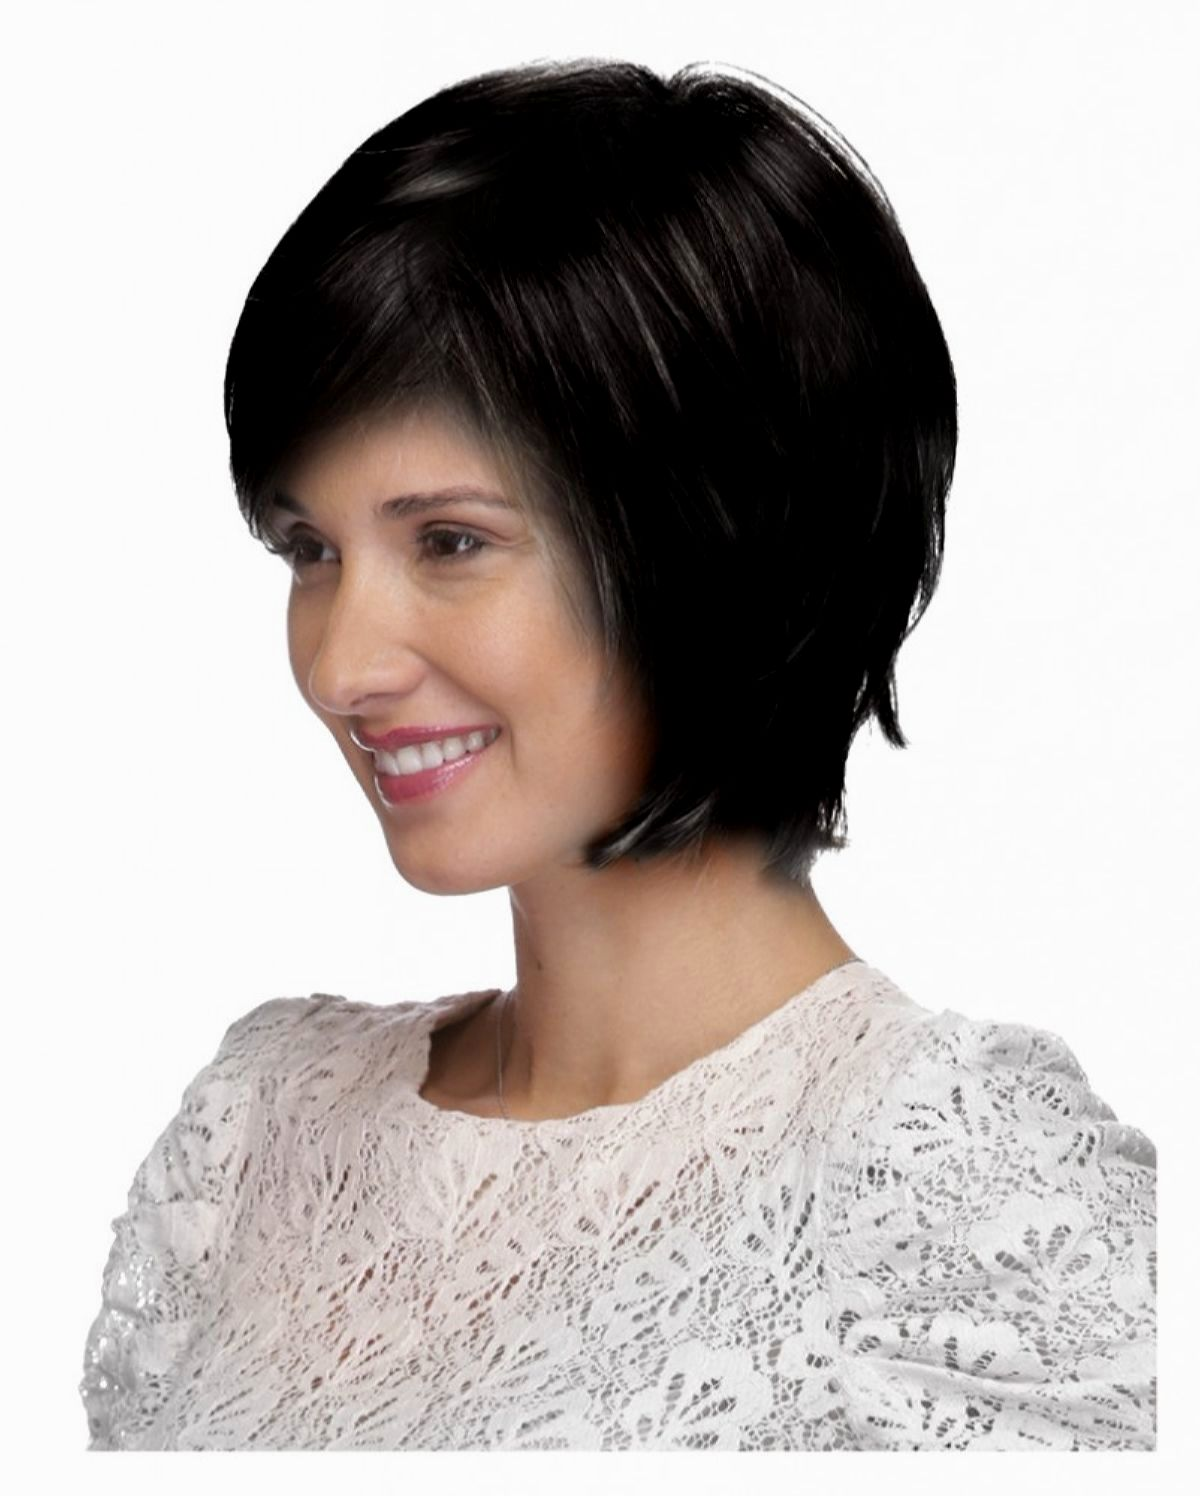 sensational cute groovy short hairstyles idea top cool short hairstyles photography